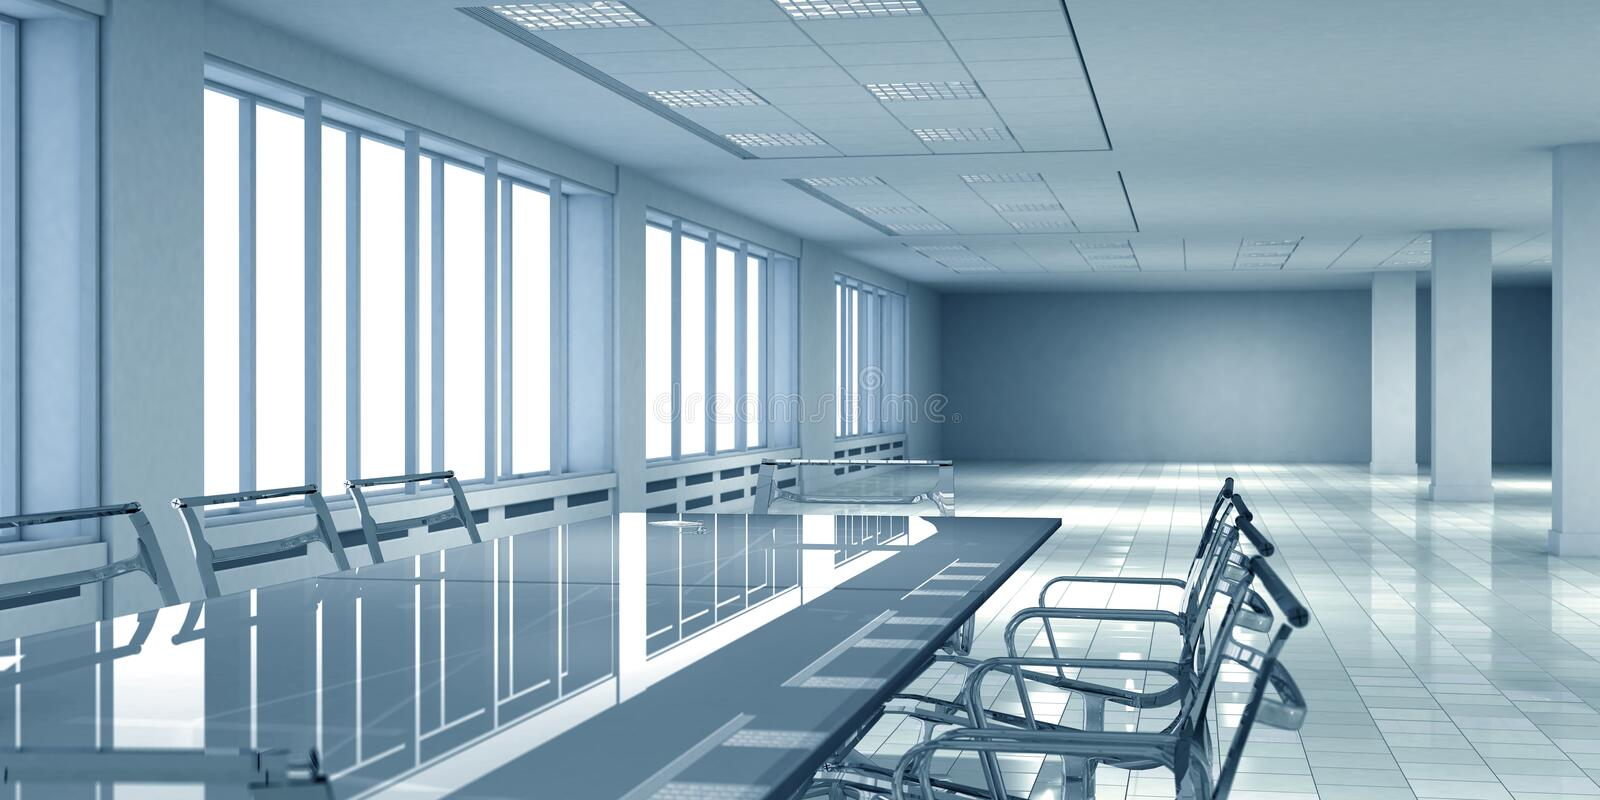 Download Office interior space stock illustration. Illustration of background - 2545076